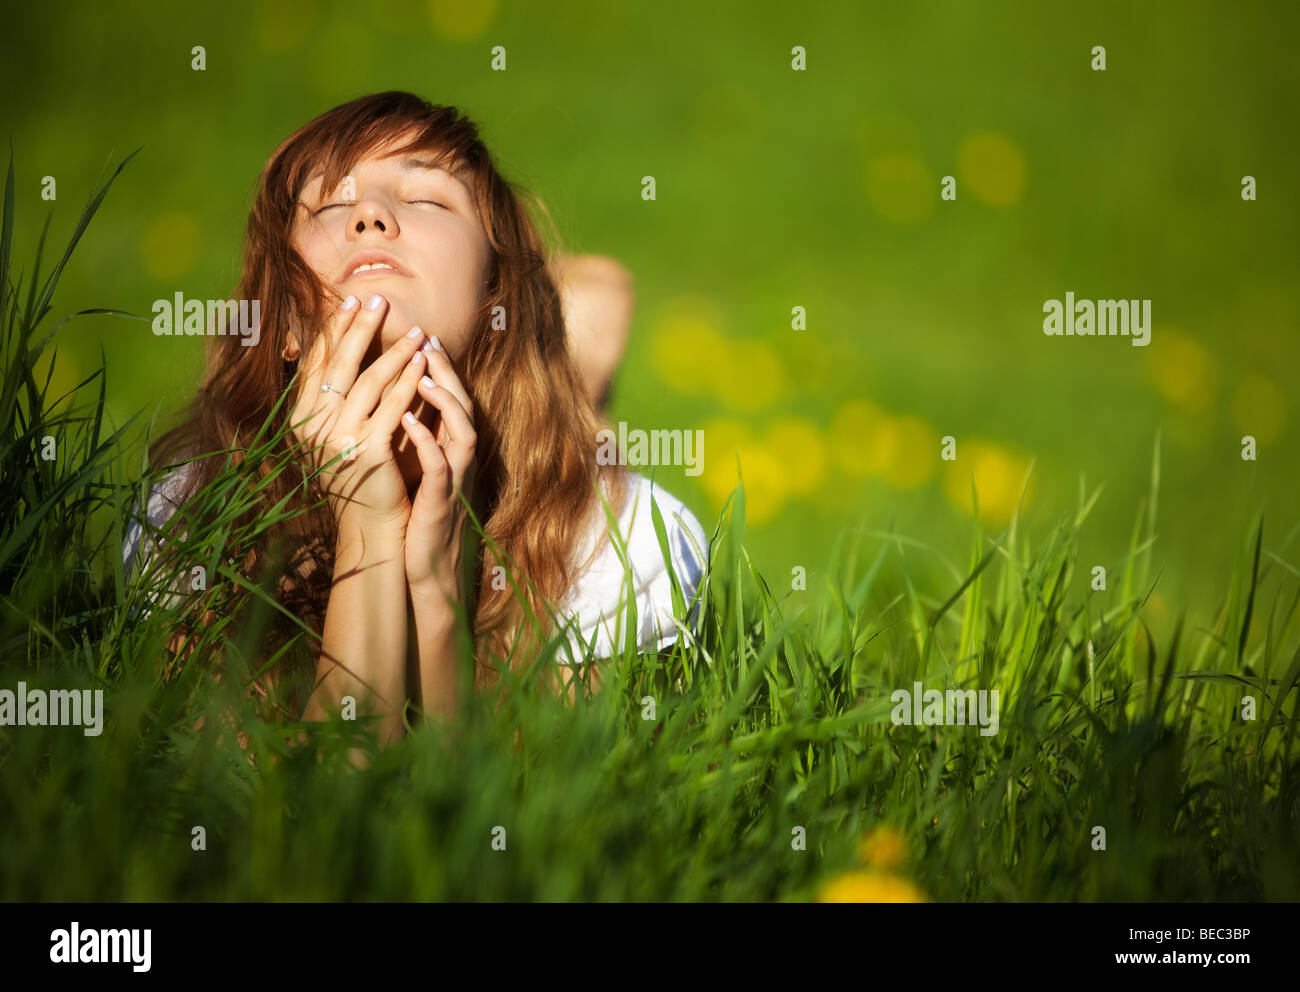 Young woman lying on grass. Shallow dof. - Stock Image